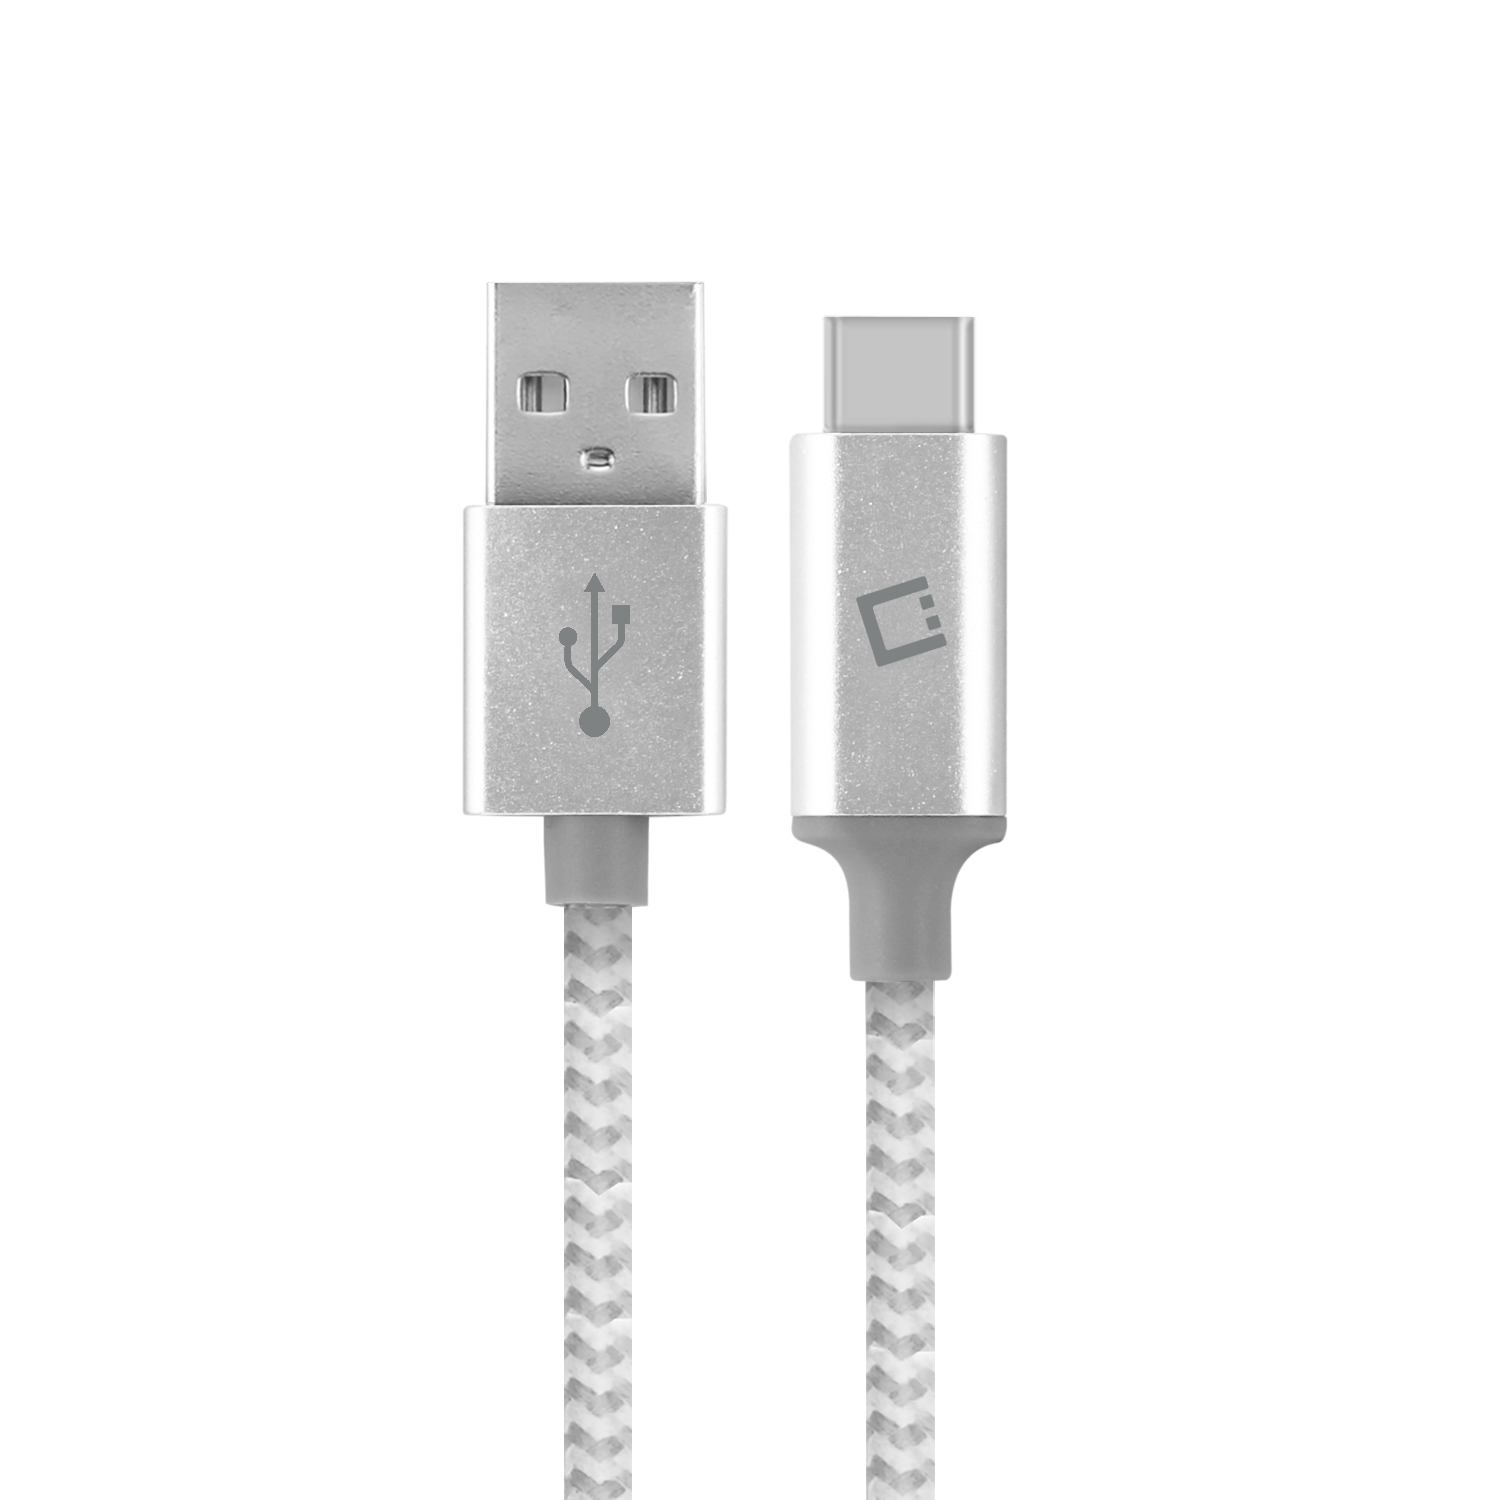 Huawei P9 USB Type-C To Type-A Braided Data Power Cable White 4ft Round